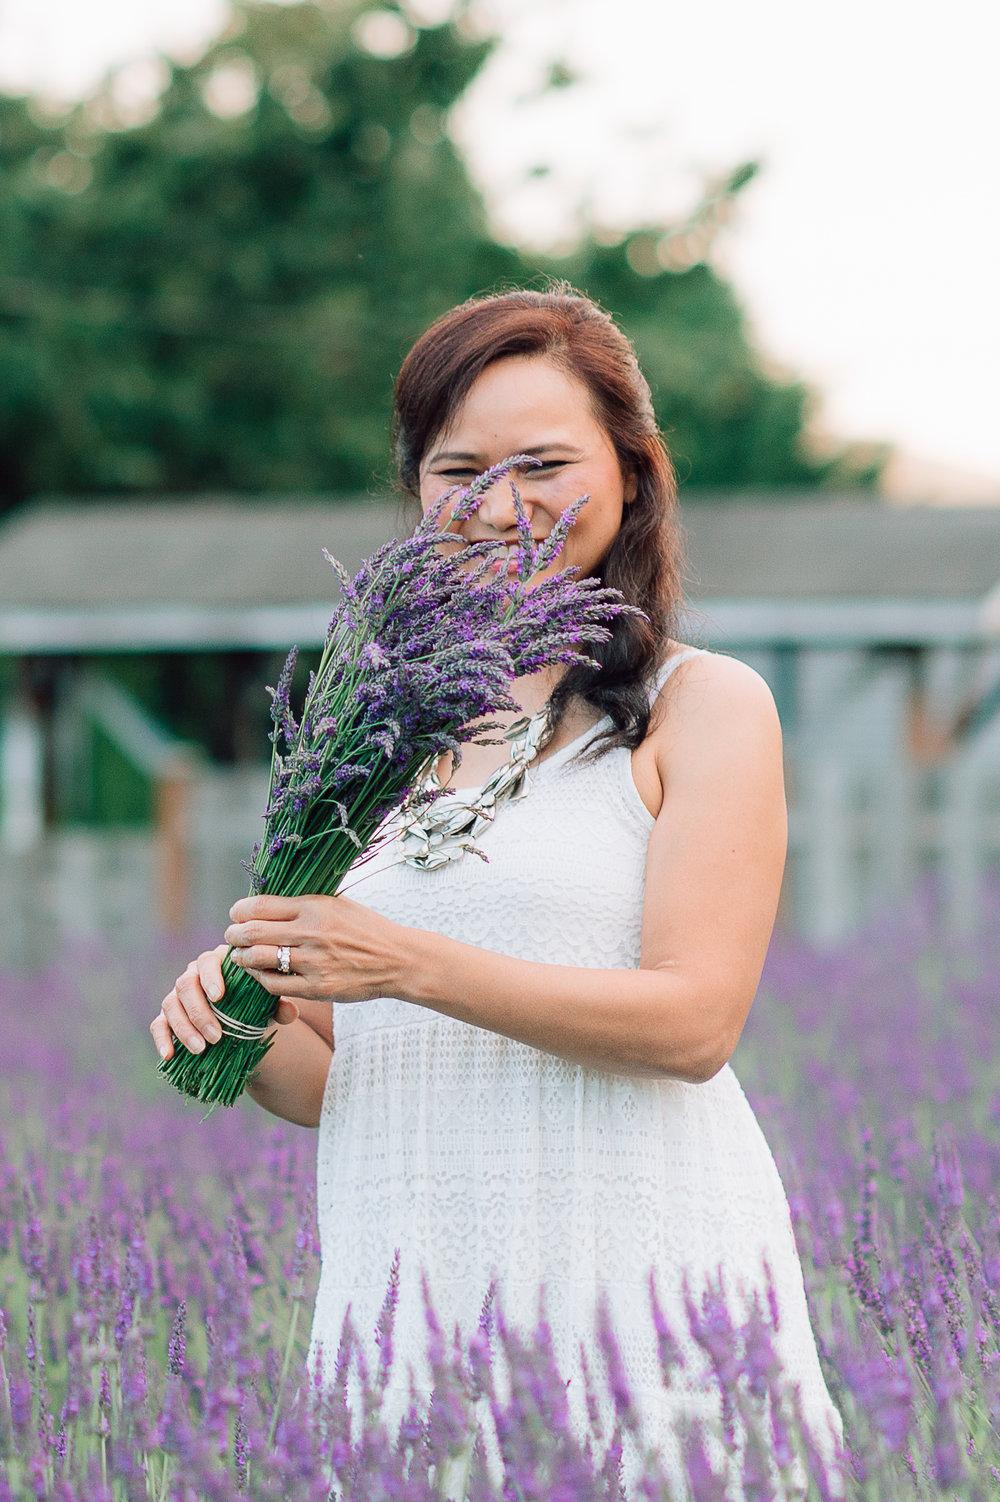 engagement_lavenderfield_youseephotography_LidiaOtto (41).jpg